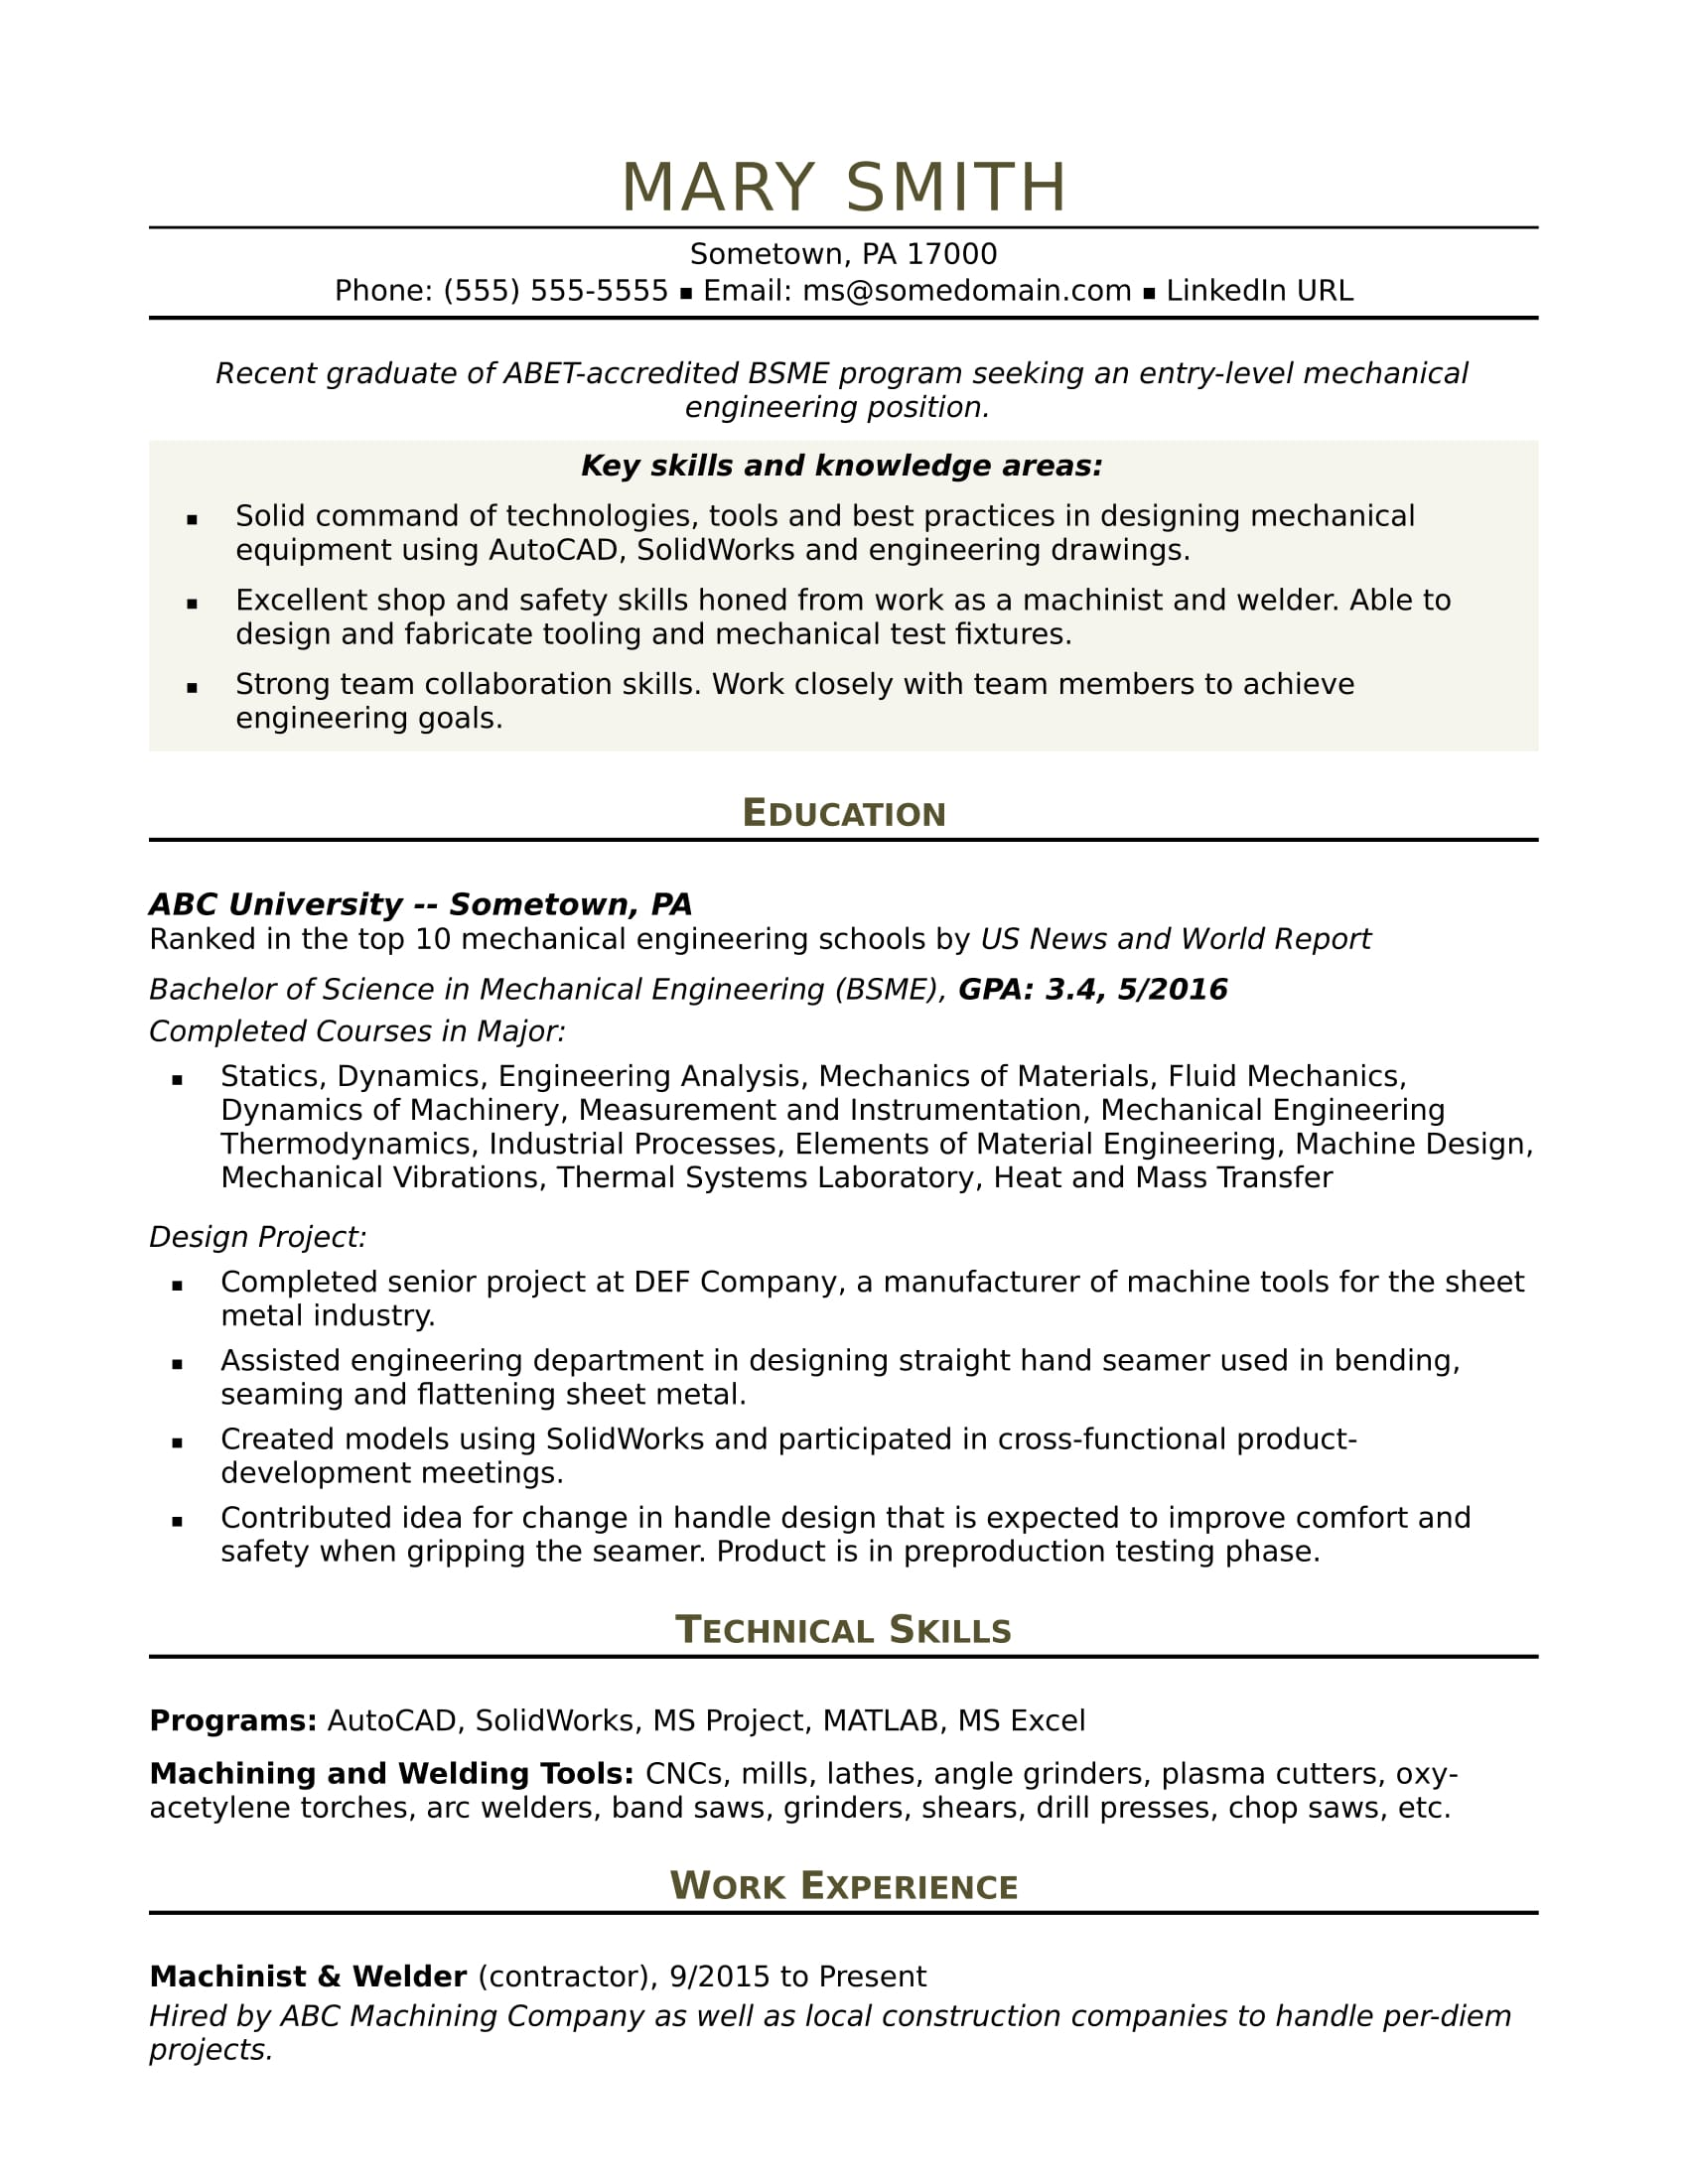 Exceptional Sample Resume For An Entry Level Mechanical Engineer  Entry Level Engineering Resume